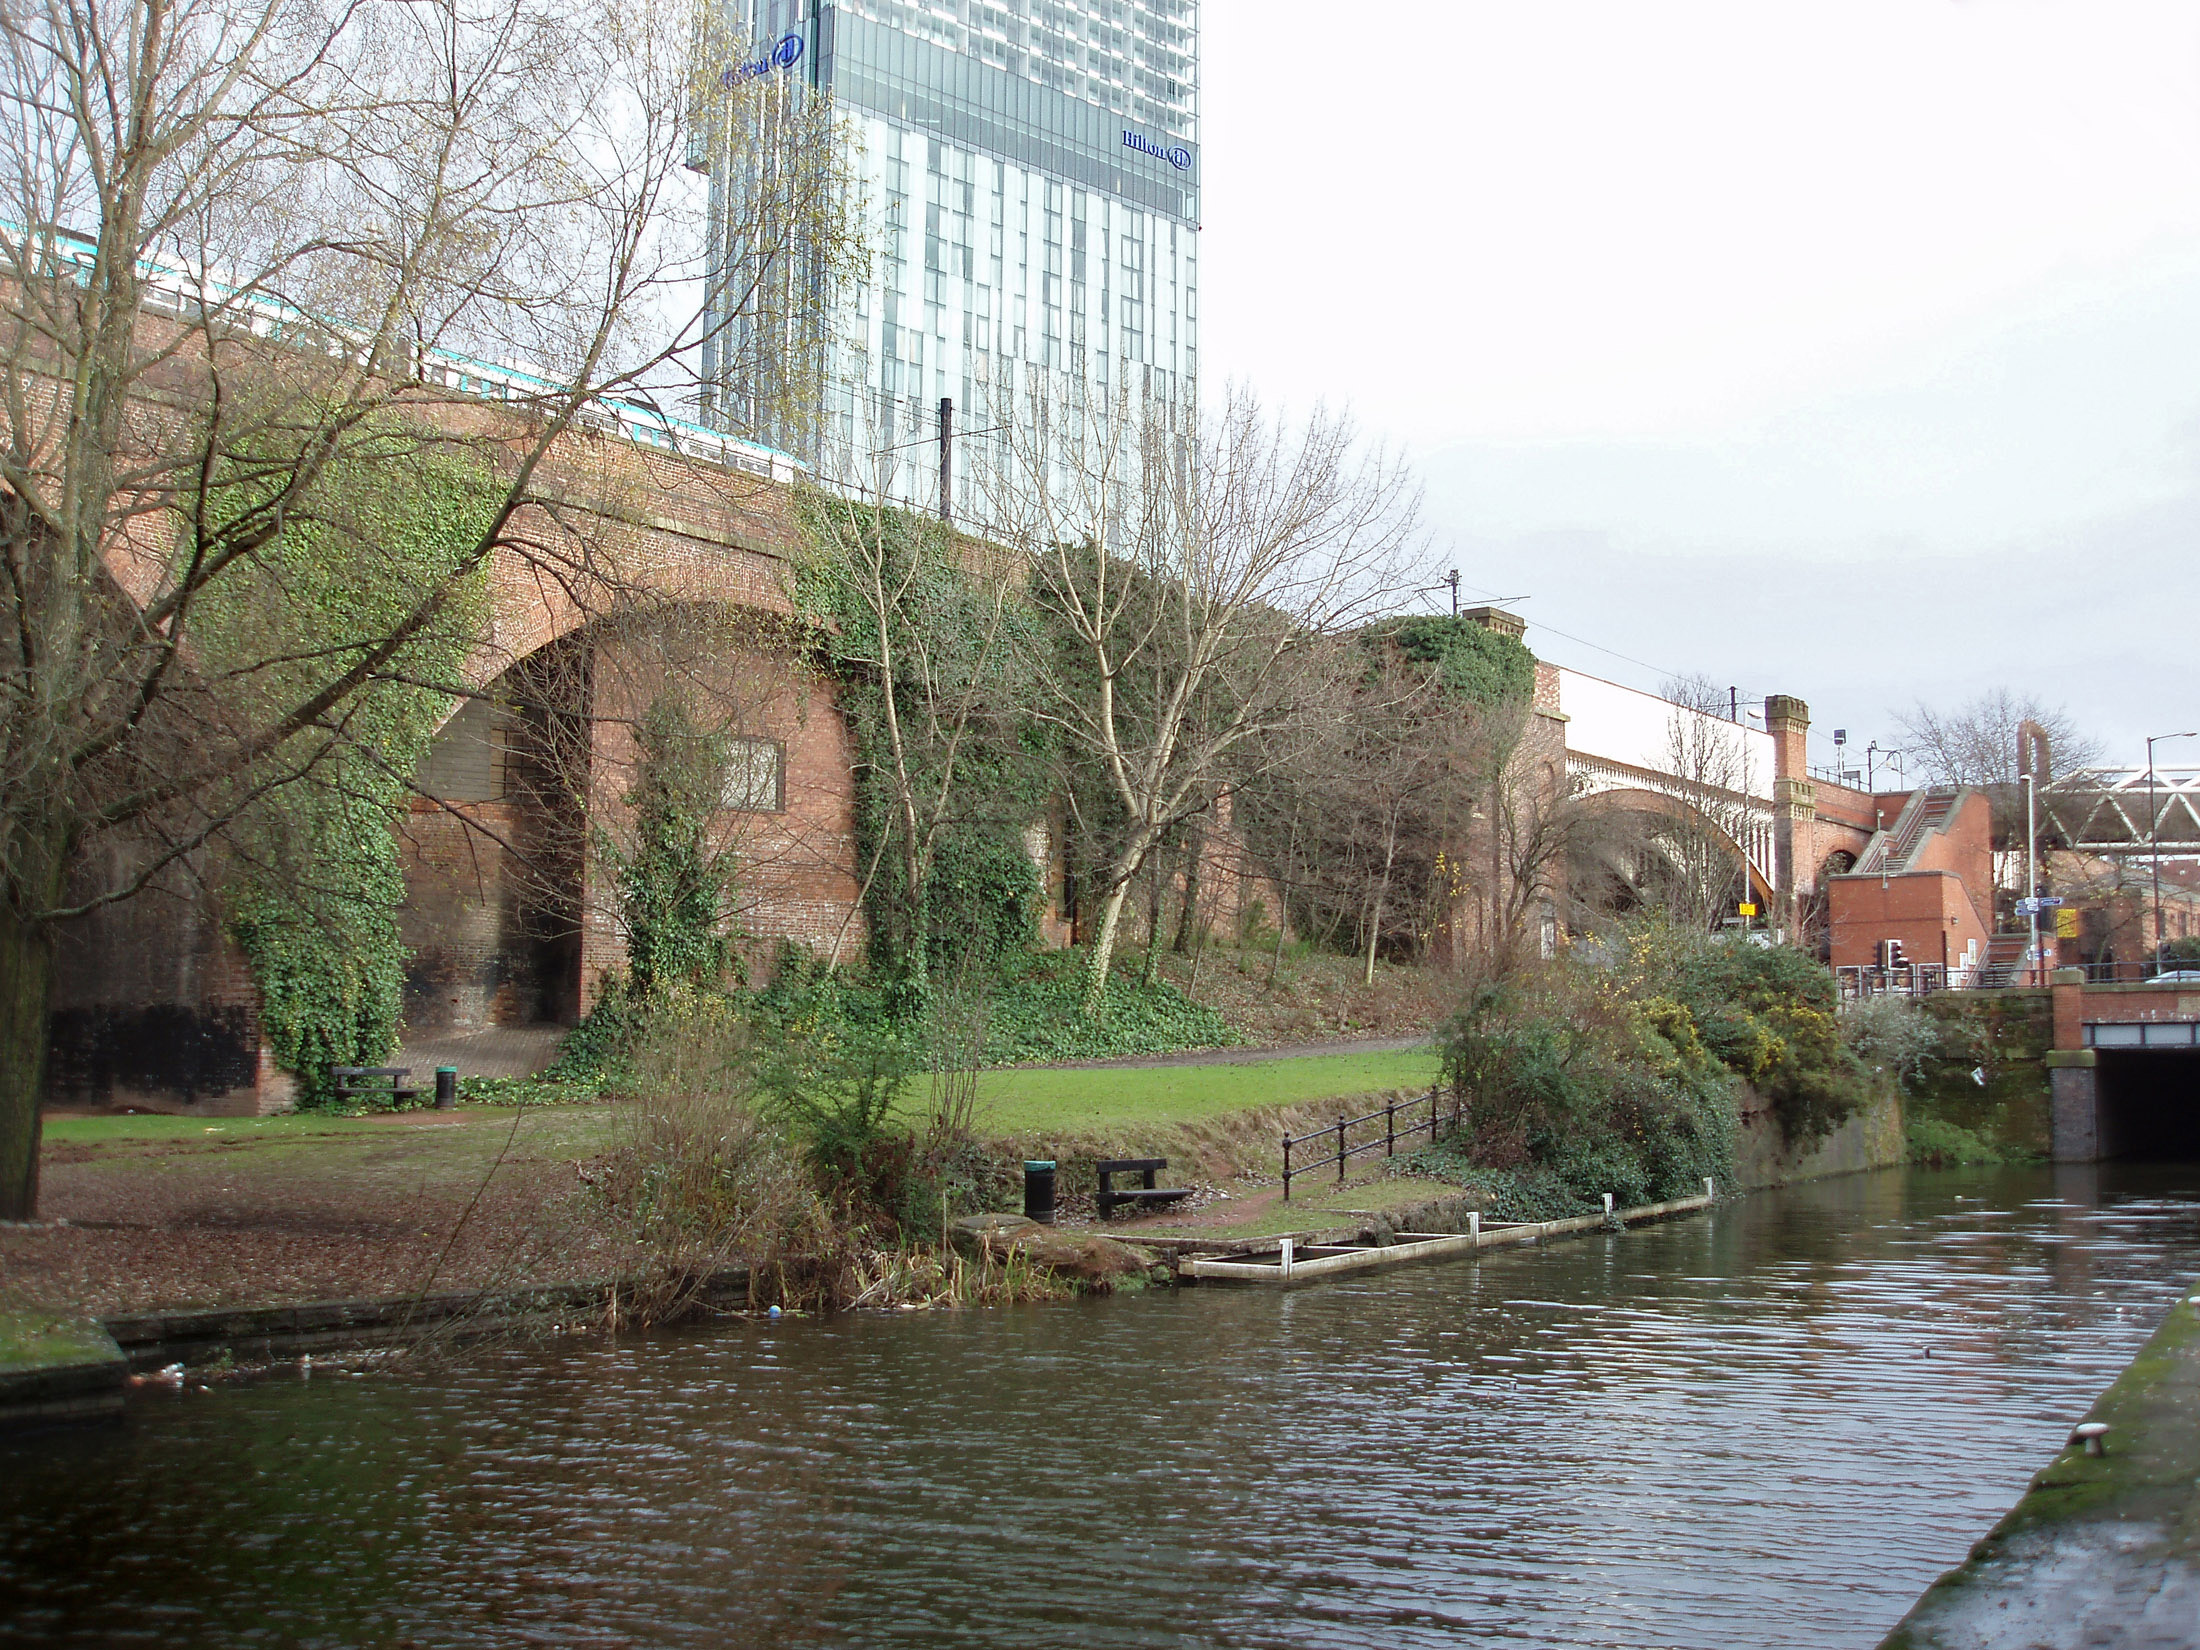 Manchester canal towpath in the Castlefield conservation area in innercity Manchester preserving the first industrial canal and warehouses